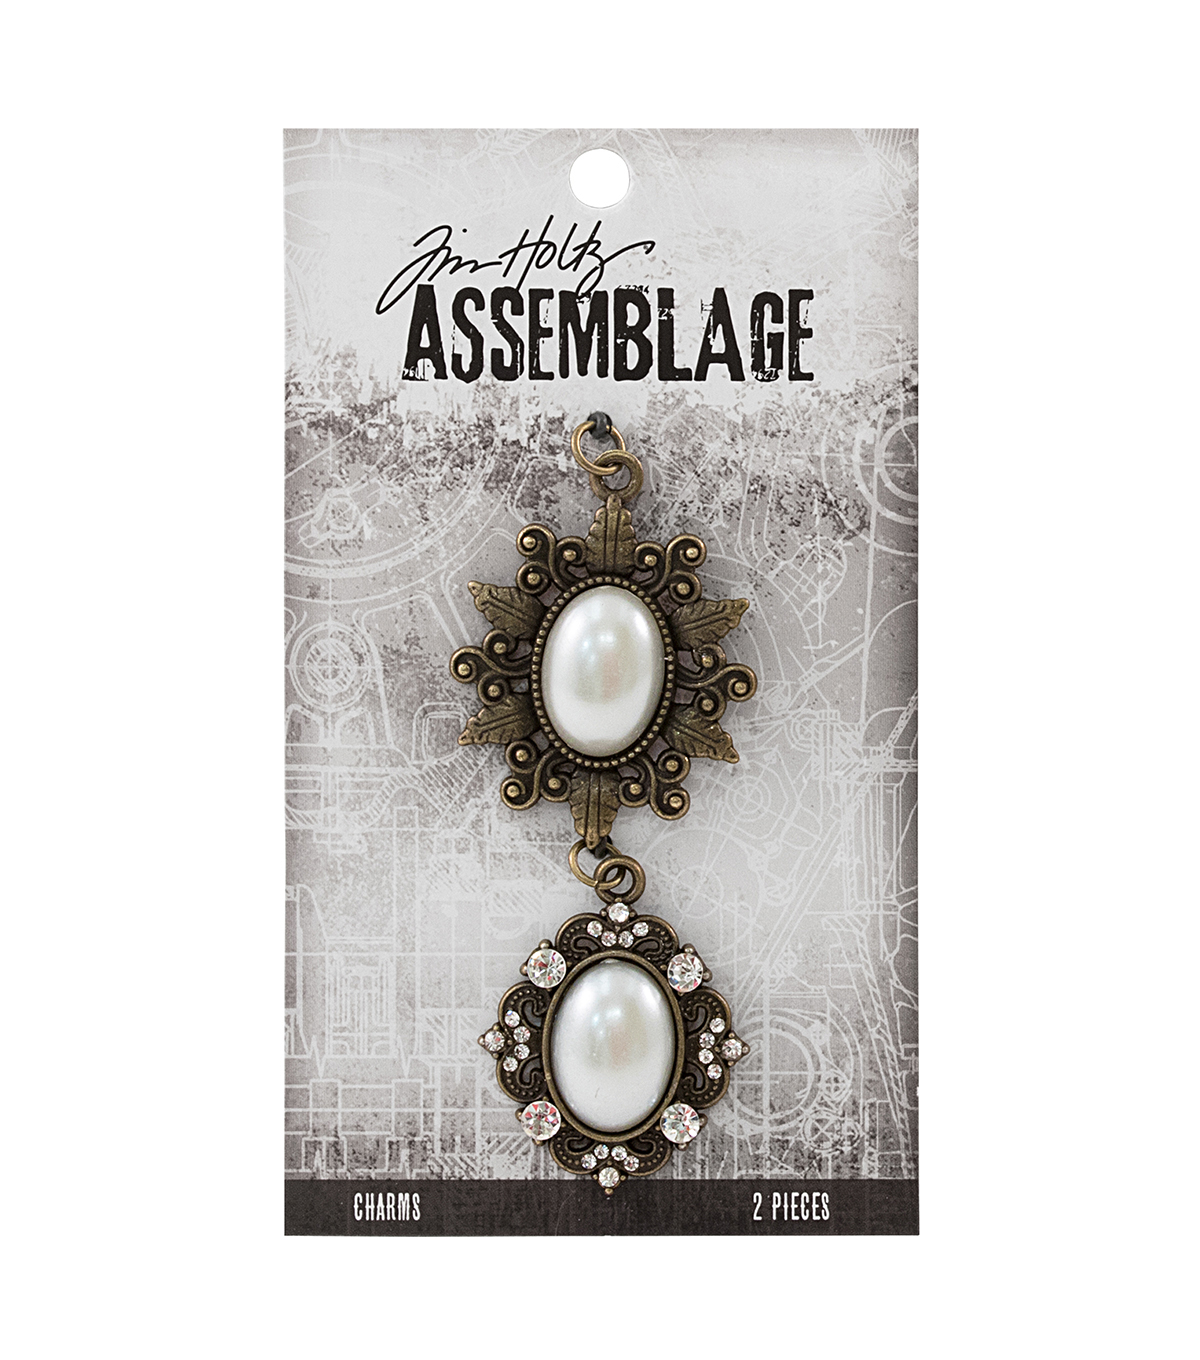 Tim Holtz Assemblage Pack of 2 Oval Pearl Frames Charms | JOANN